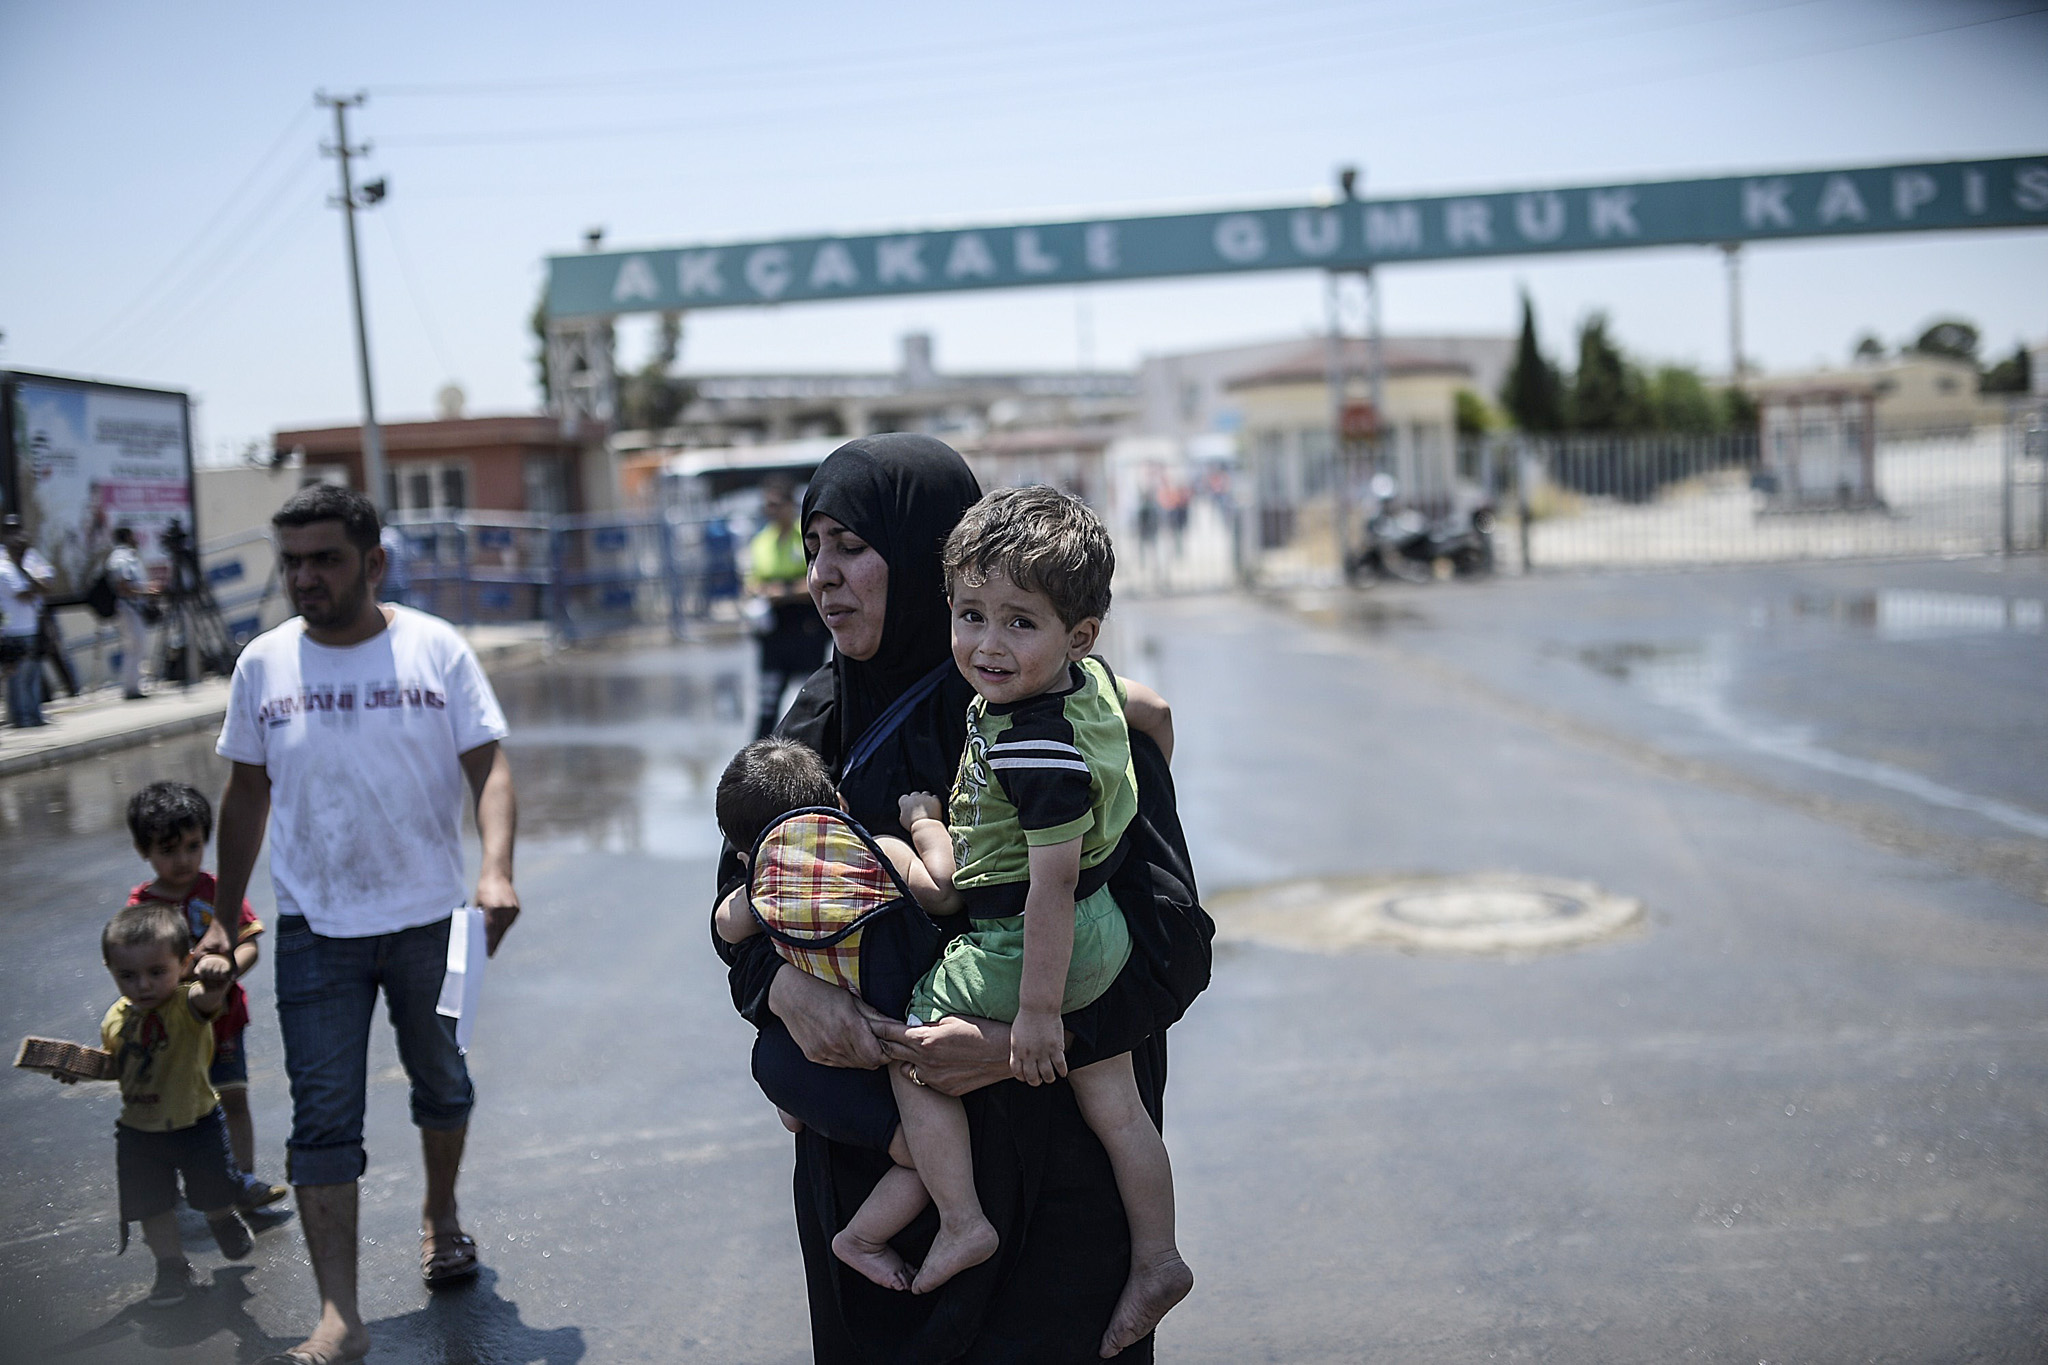 "A Syrian woman fleeing the war walks wit...A Syrian woman fleeing the war walks with her children after crossing into Turkey at the Akcakale border crossing, in Sanliurfa province on June 15, 2015. Turkey said it was taking measures to limit the flow of Syrian refugees onto its territory after an influx of thousands more over the last days due to fighting between Kurds and jihadists. Under an ""open-door"" policy, Turkey has taken in 1.8 million Syrian refugees since the conflict in Syria erupted in 2011. AFP PHOTO / BULENT KILICBULENT KILIC/AFP/Getty Images"